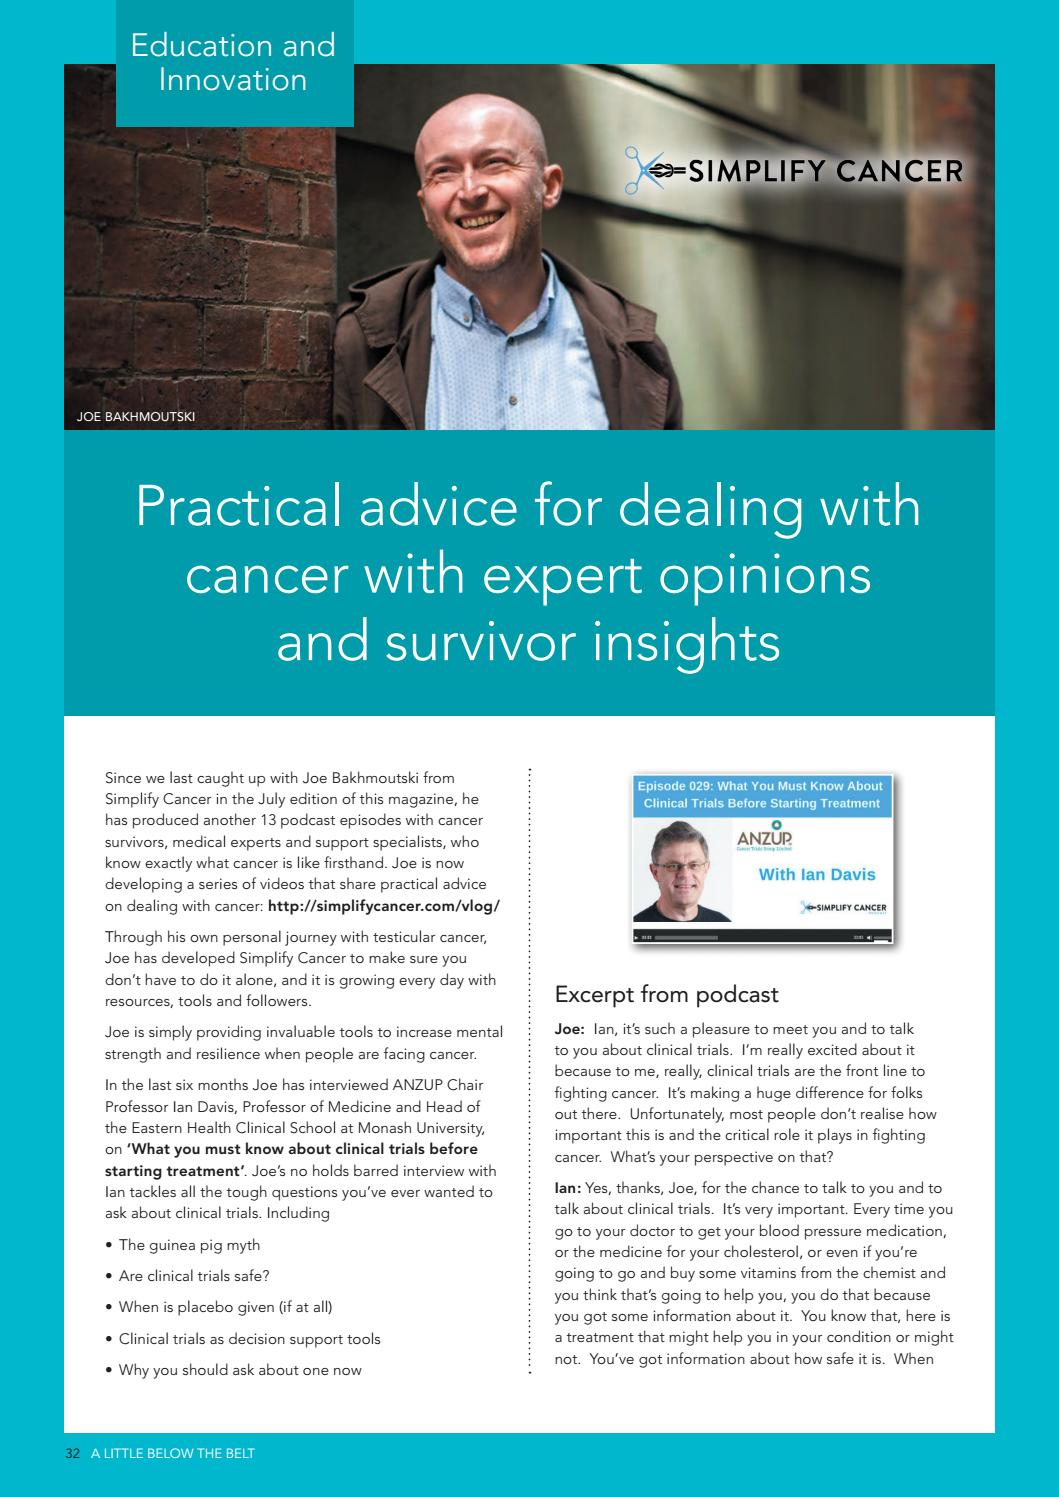 Practical advice for dealing with cancer with expert opinions and survivor insights